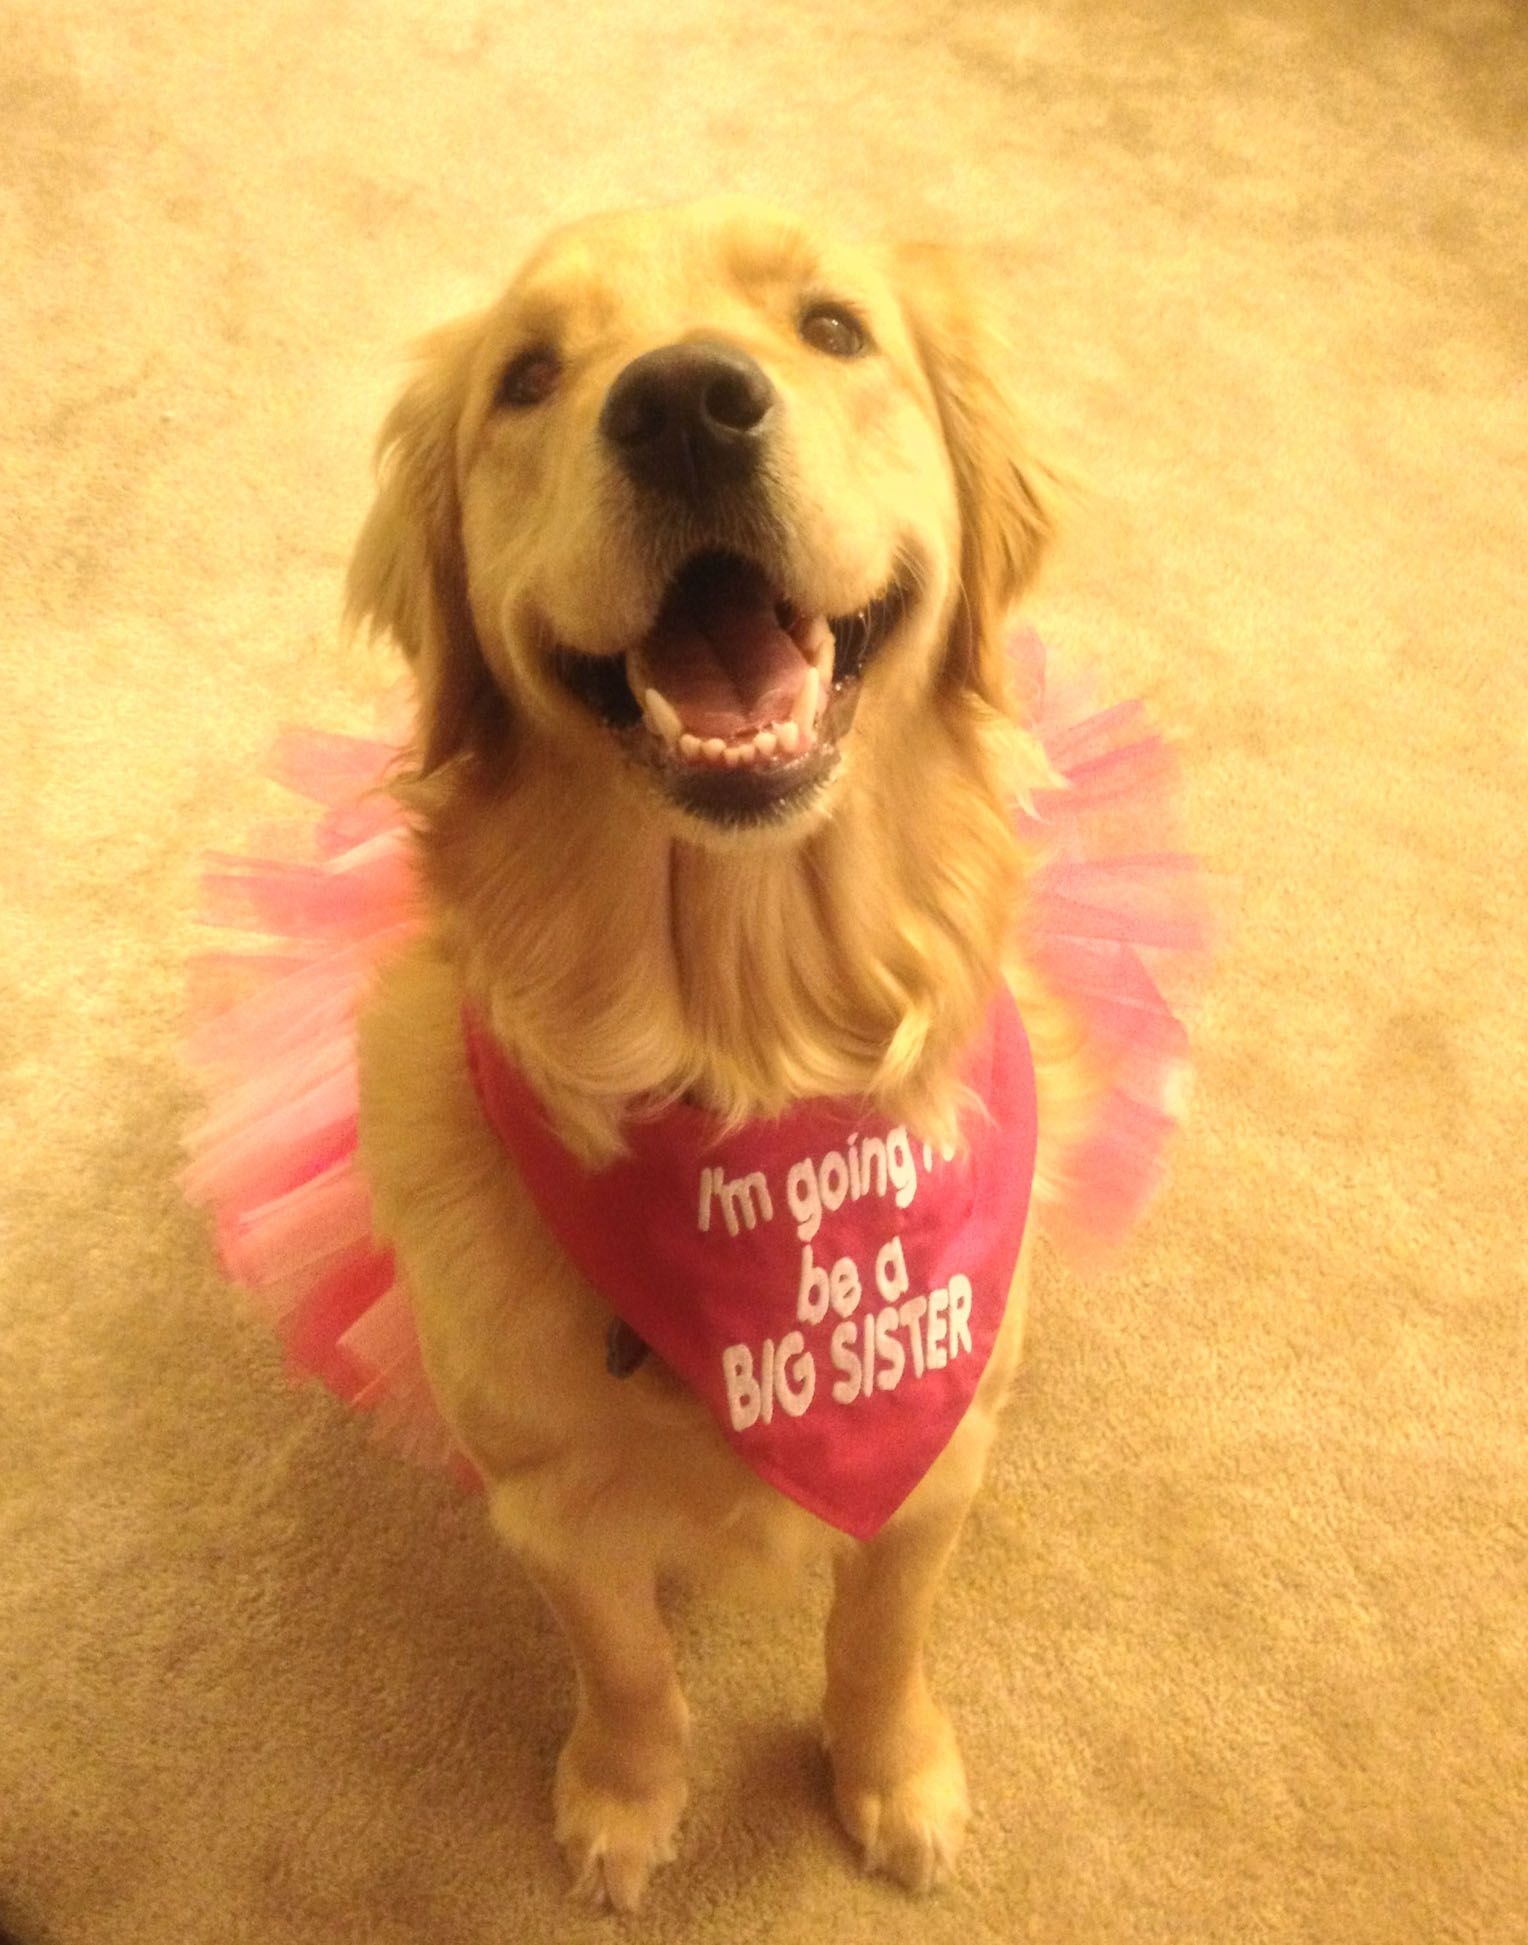 Baby announcement goldenretriever dog baby – Indiana Birth Announcements